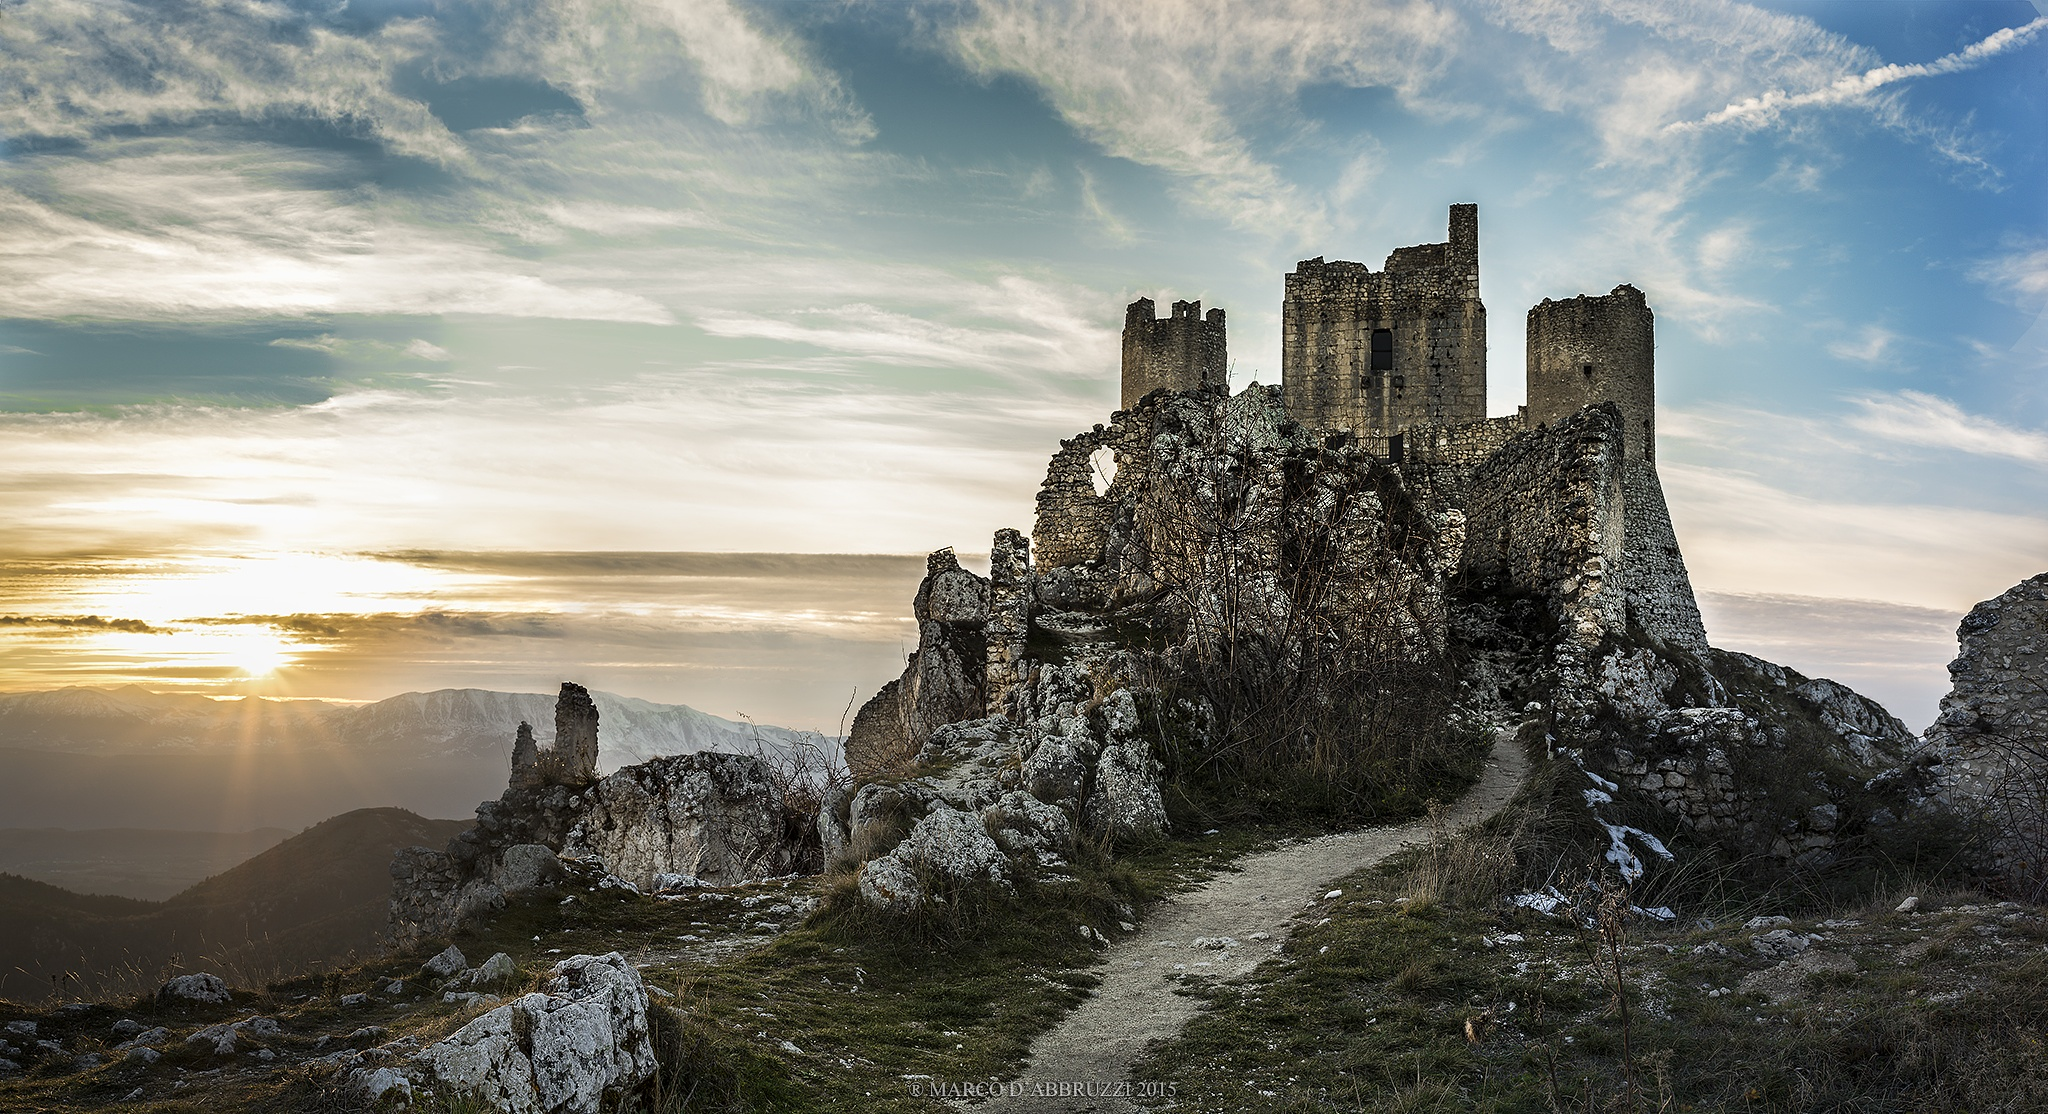 Sunset at Rocca Calascio by Marco D'abbruzzi